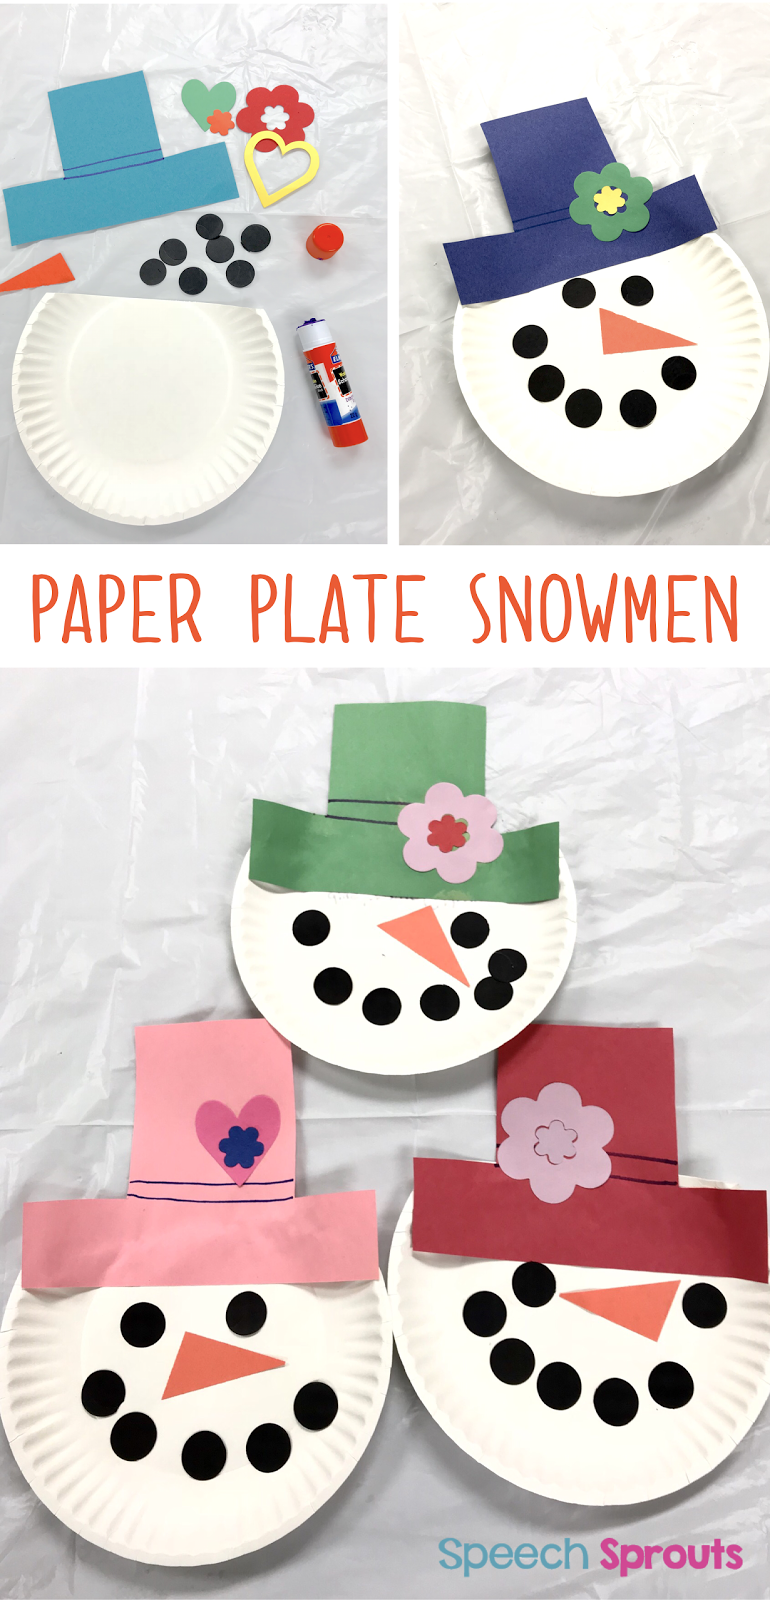 Speech sprouts how to build language with 3 easy snowman activities paper plate snowmen easy snowman activities for speech therapy crafts and game jeuxipadfo Gallery